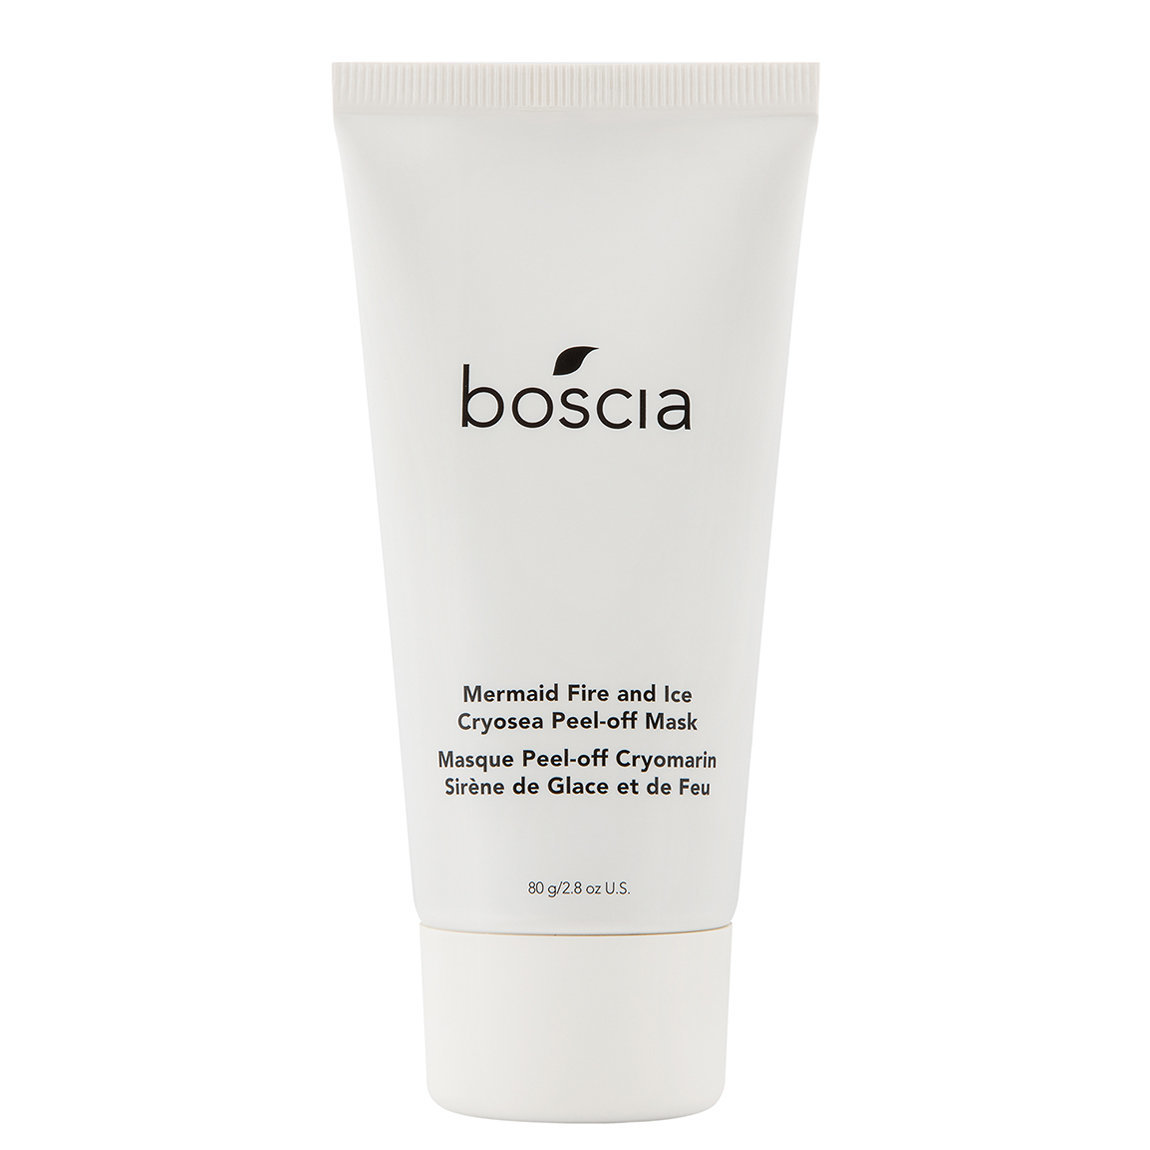 boscia Cryosea Mermaid Fire and Ice Peel-Off Mask product swatch.